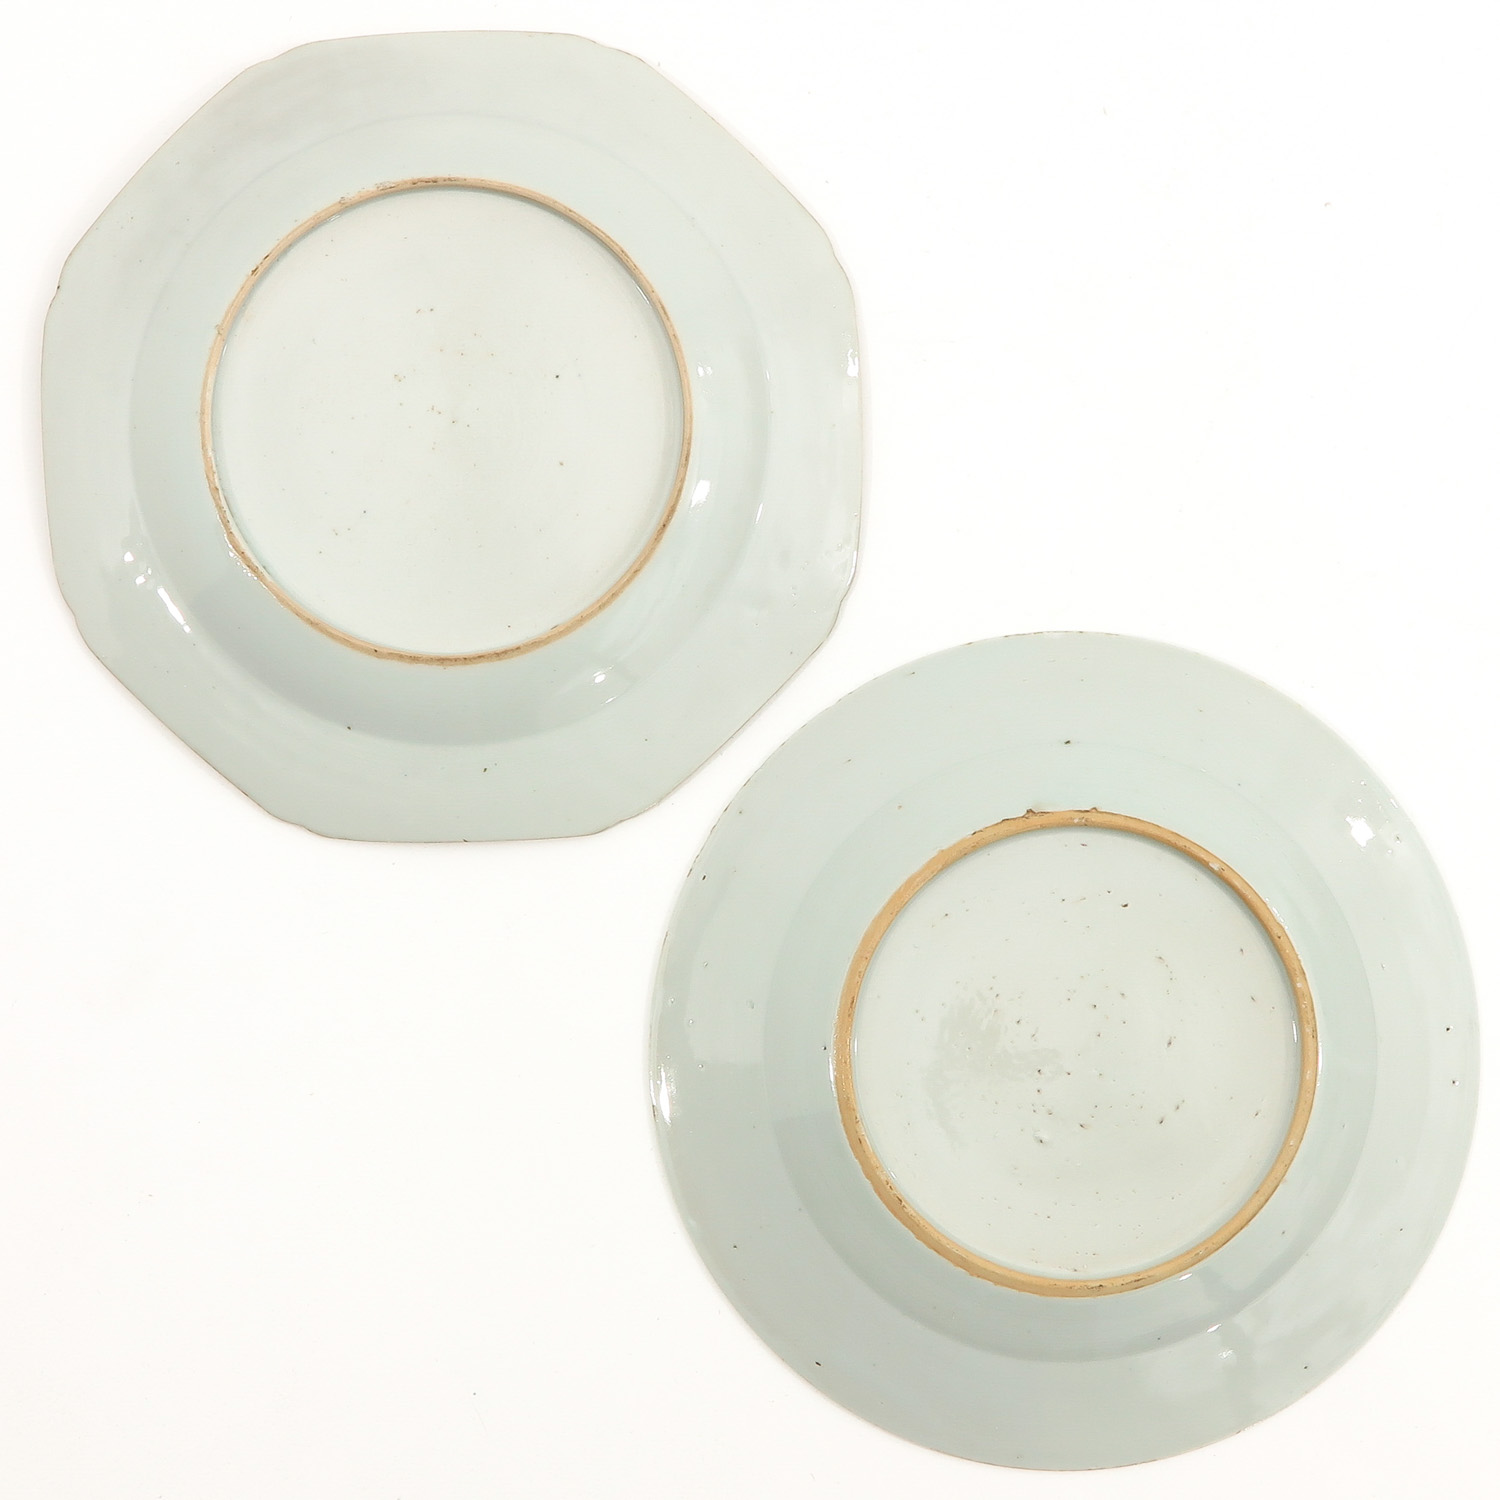 A Set of 6 Blue and White Plates - Image 6 of 10